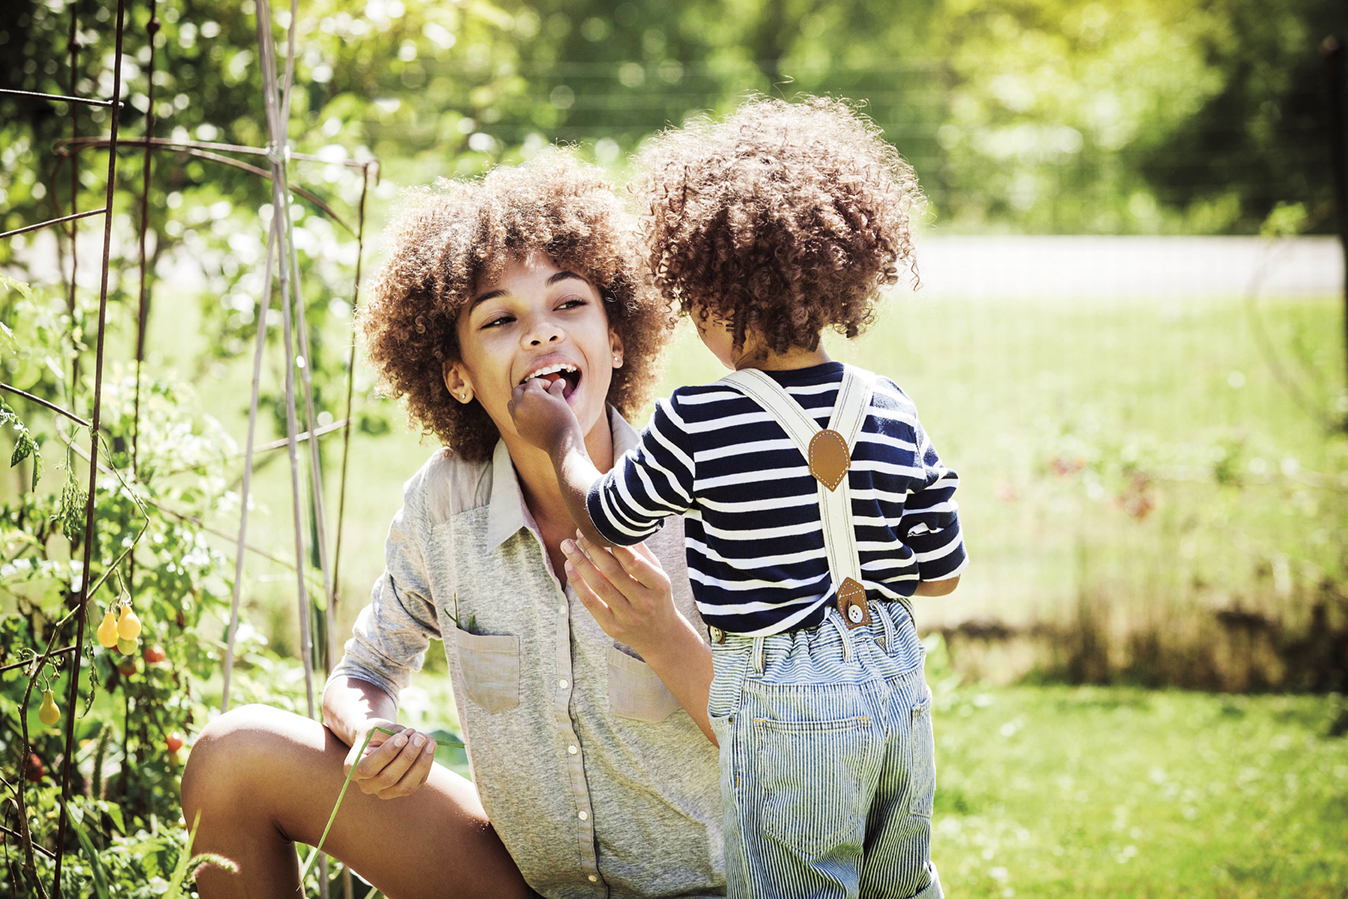 Nurturing the health of little ones through the pleasure of eating